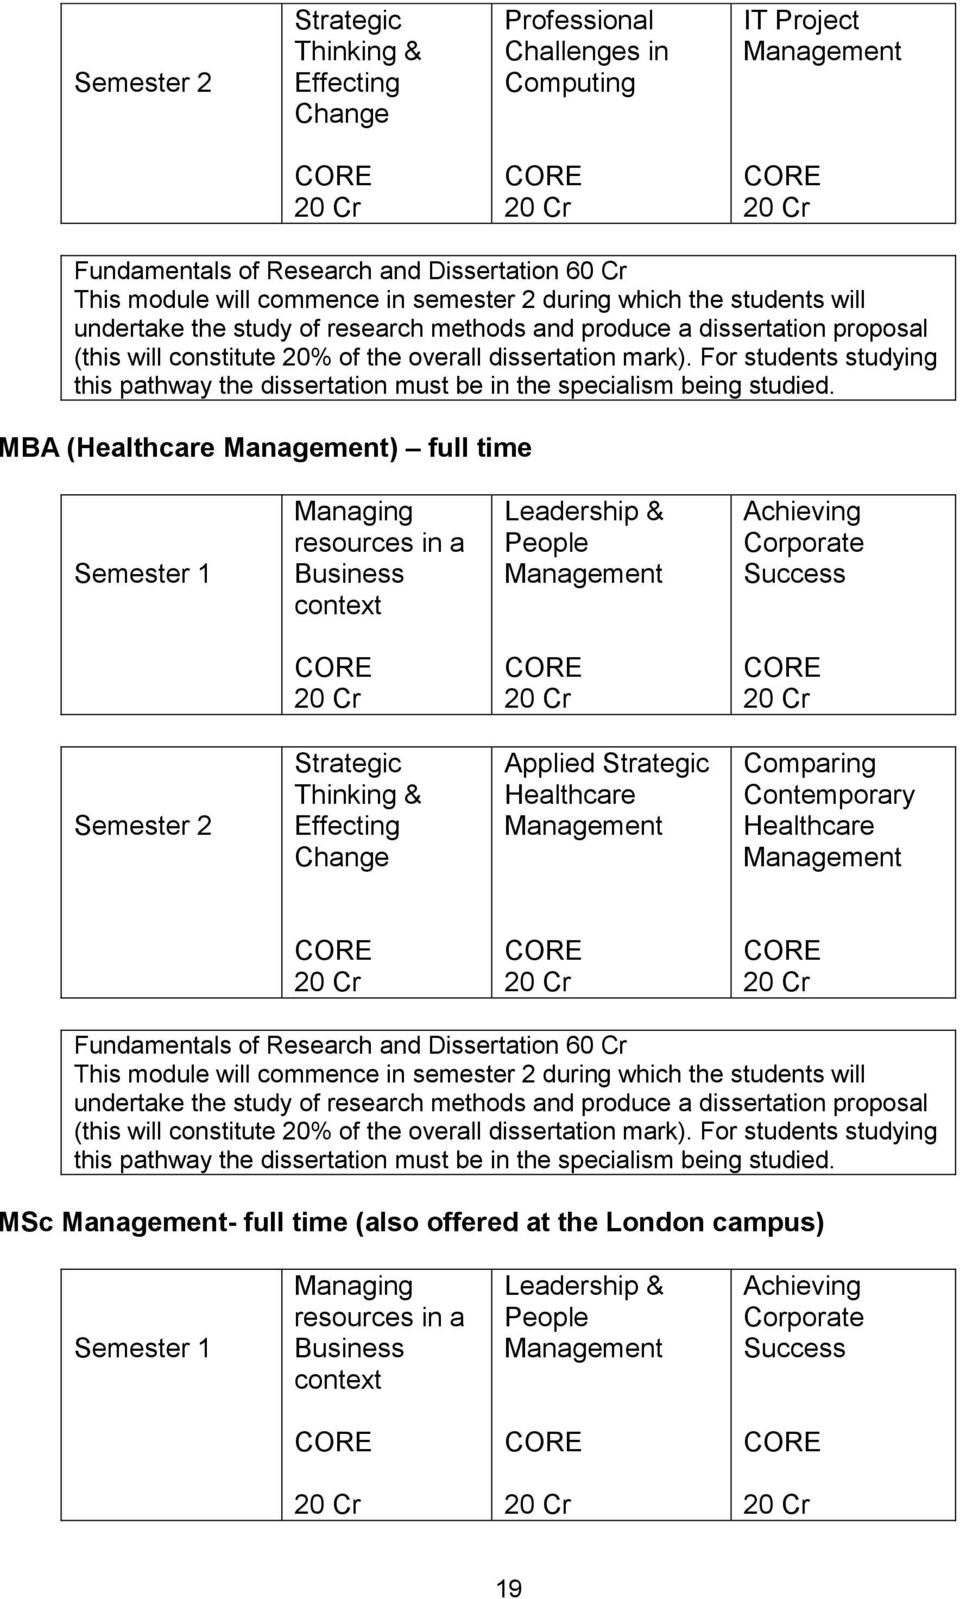 For students studying this pathway the dissertation must be in the specialism being studied.